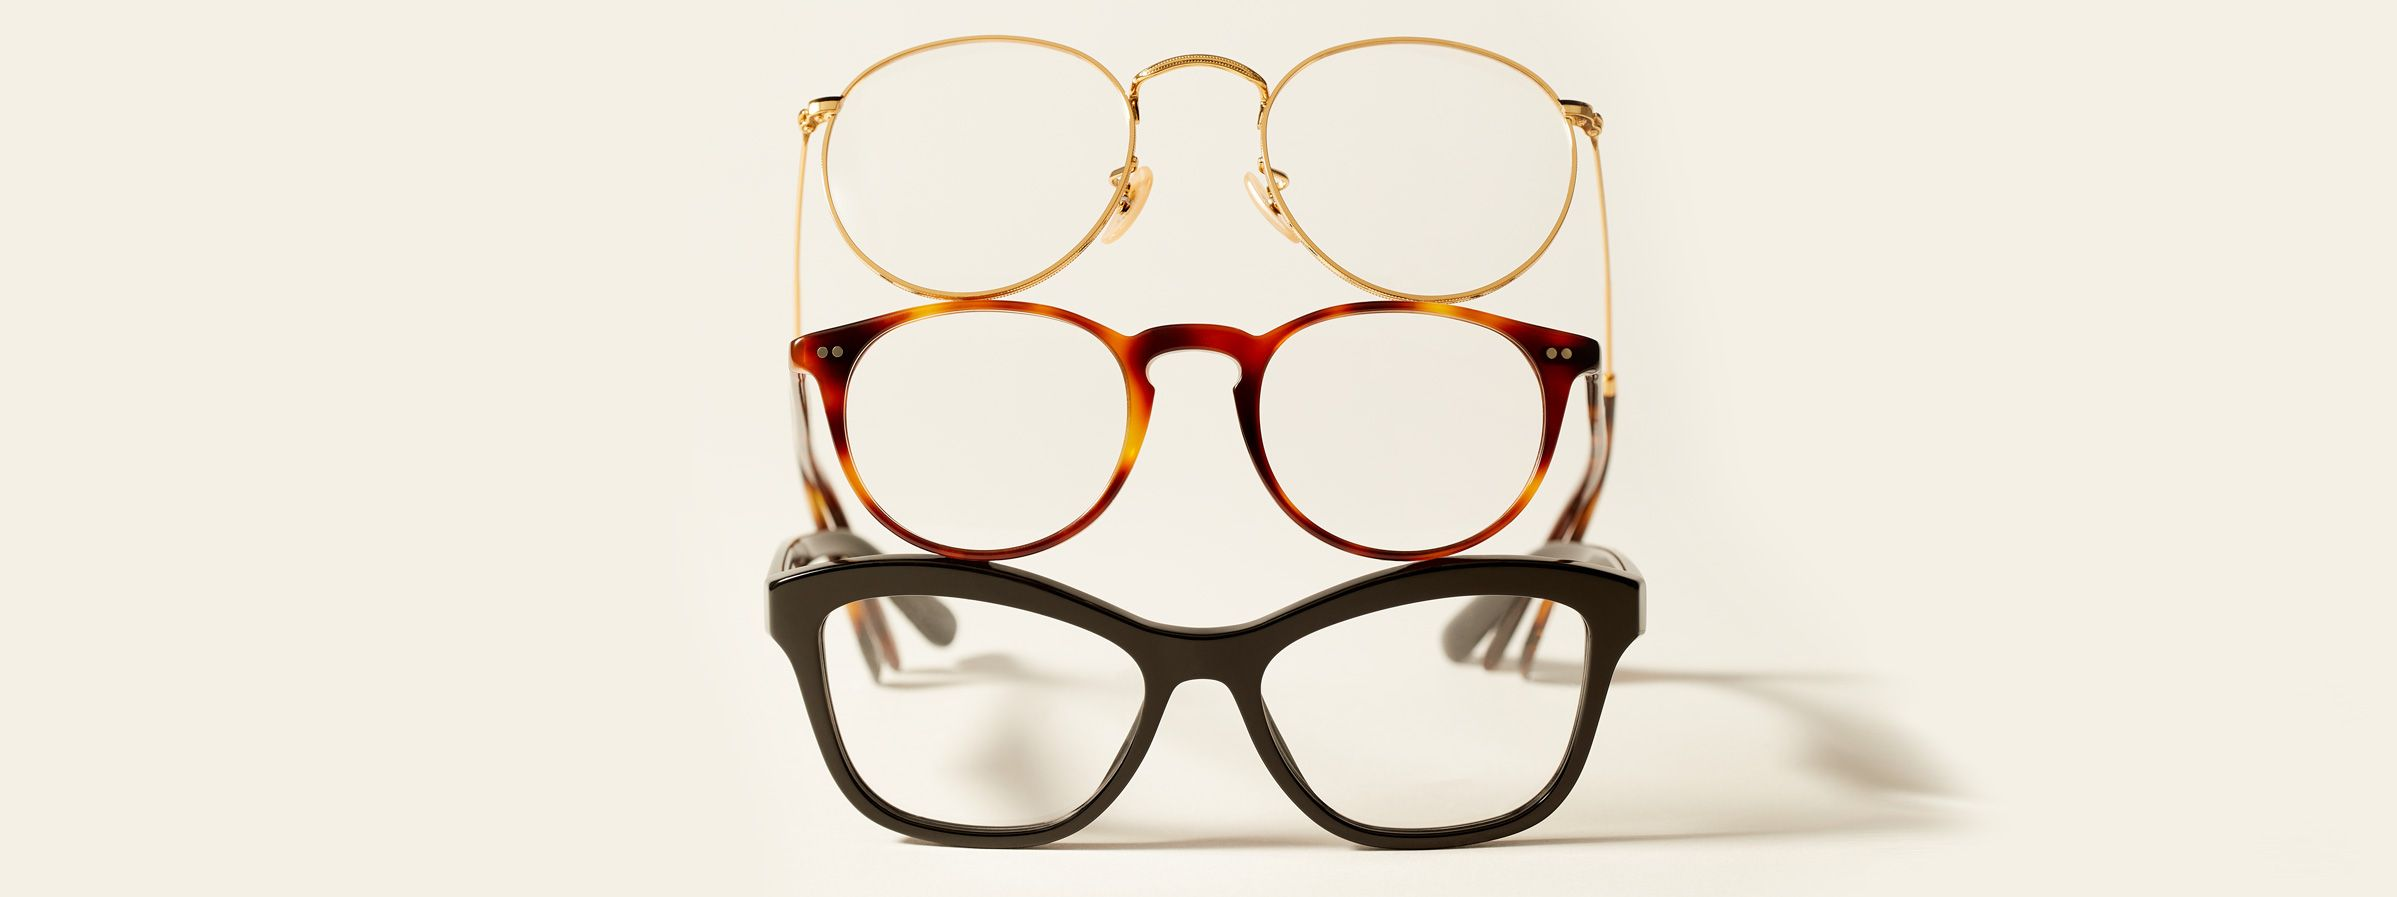 an image of three reading glasses stacked ontop of eachother